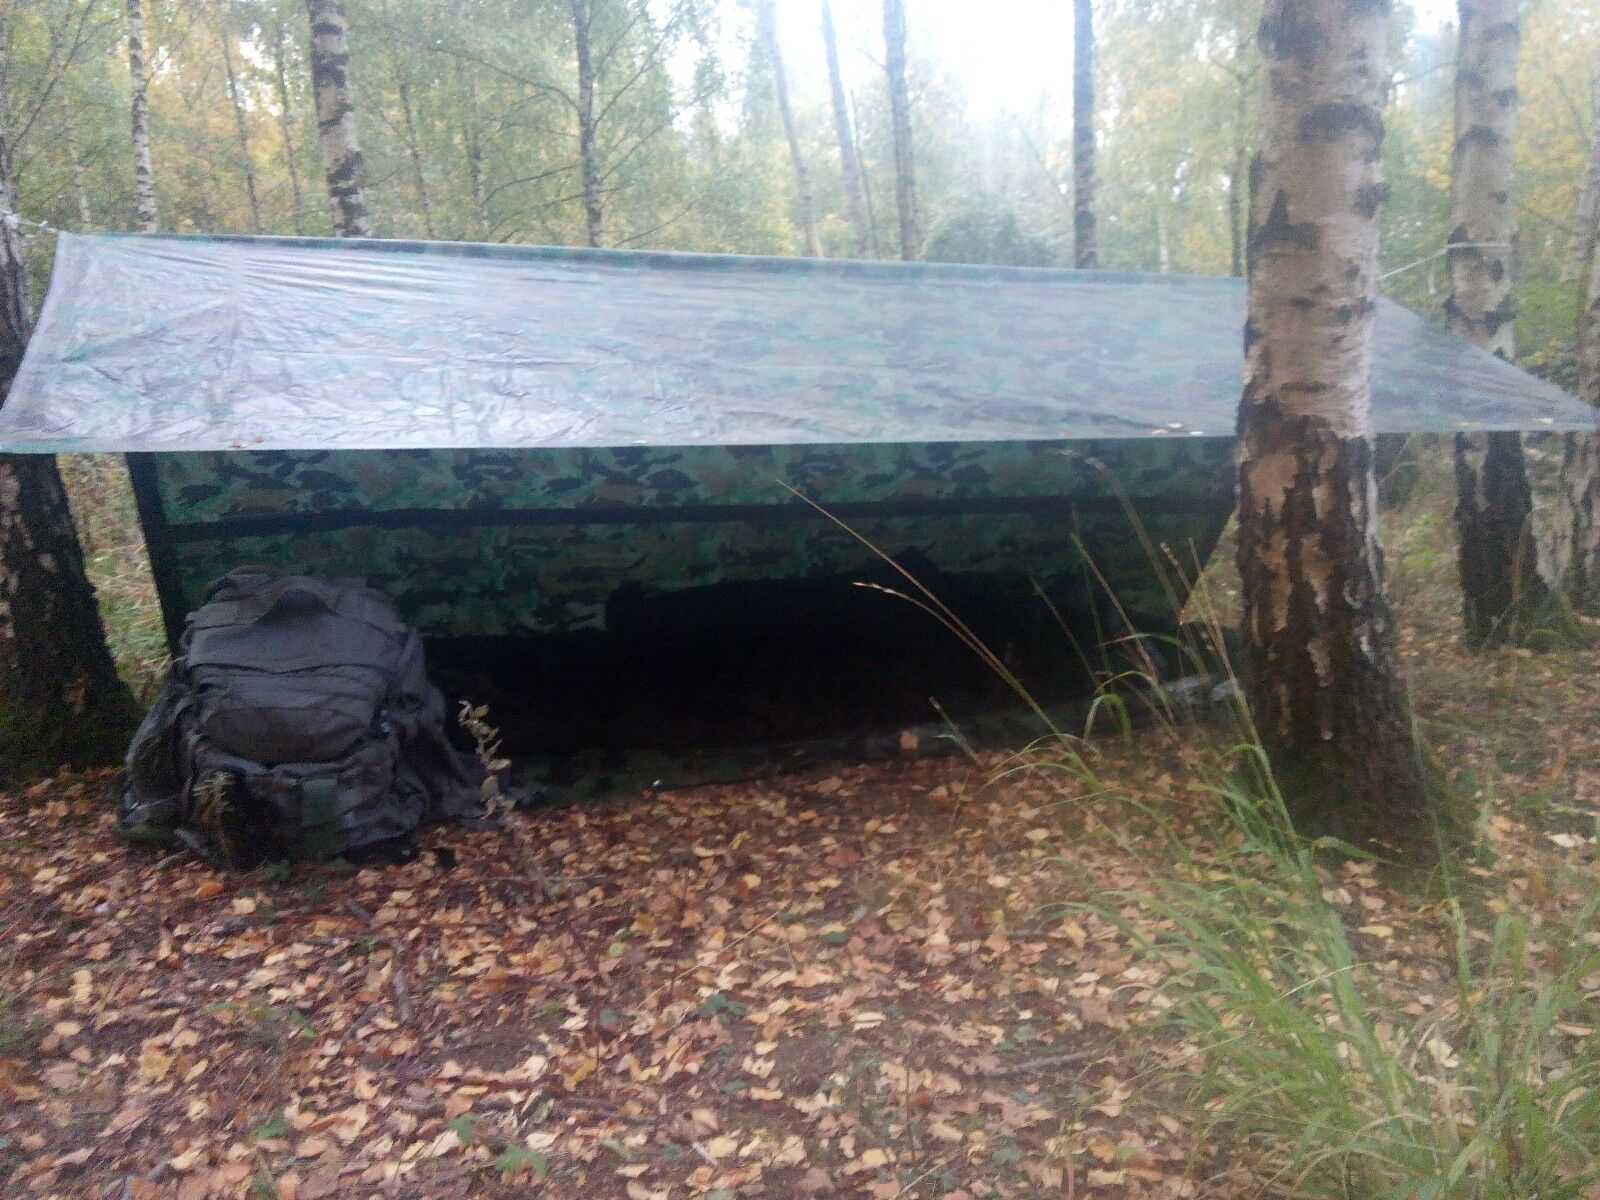 Versatile Emergency Shelter. Tarp Basha Ground Sheet Bivi Army Camo IPK Hammock